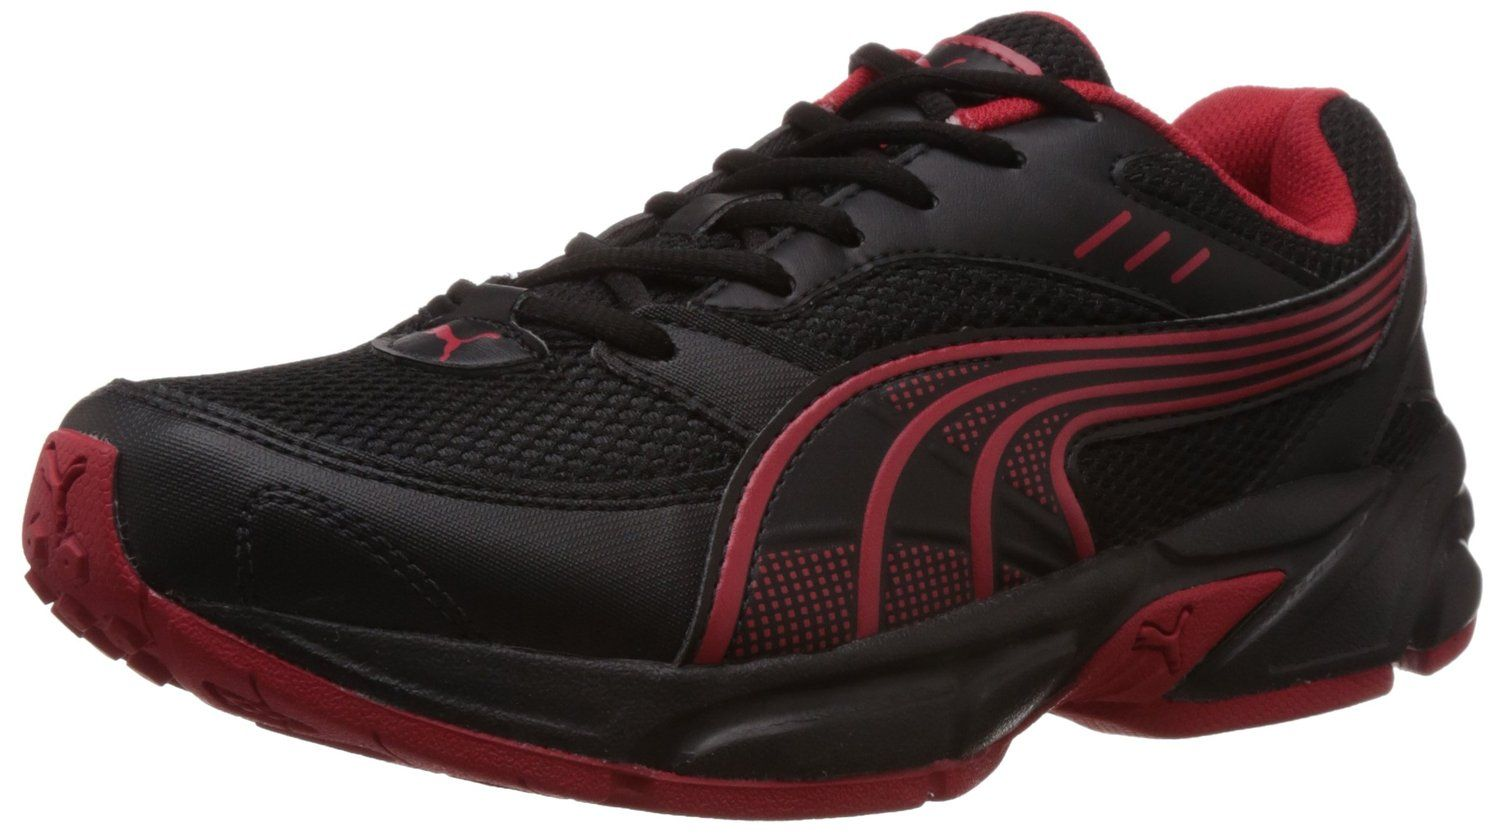 Puma Men's Pluto Dp Running Shoes: Buy Online at Low Prices in ...